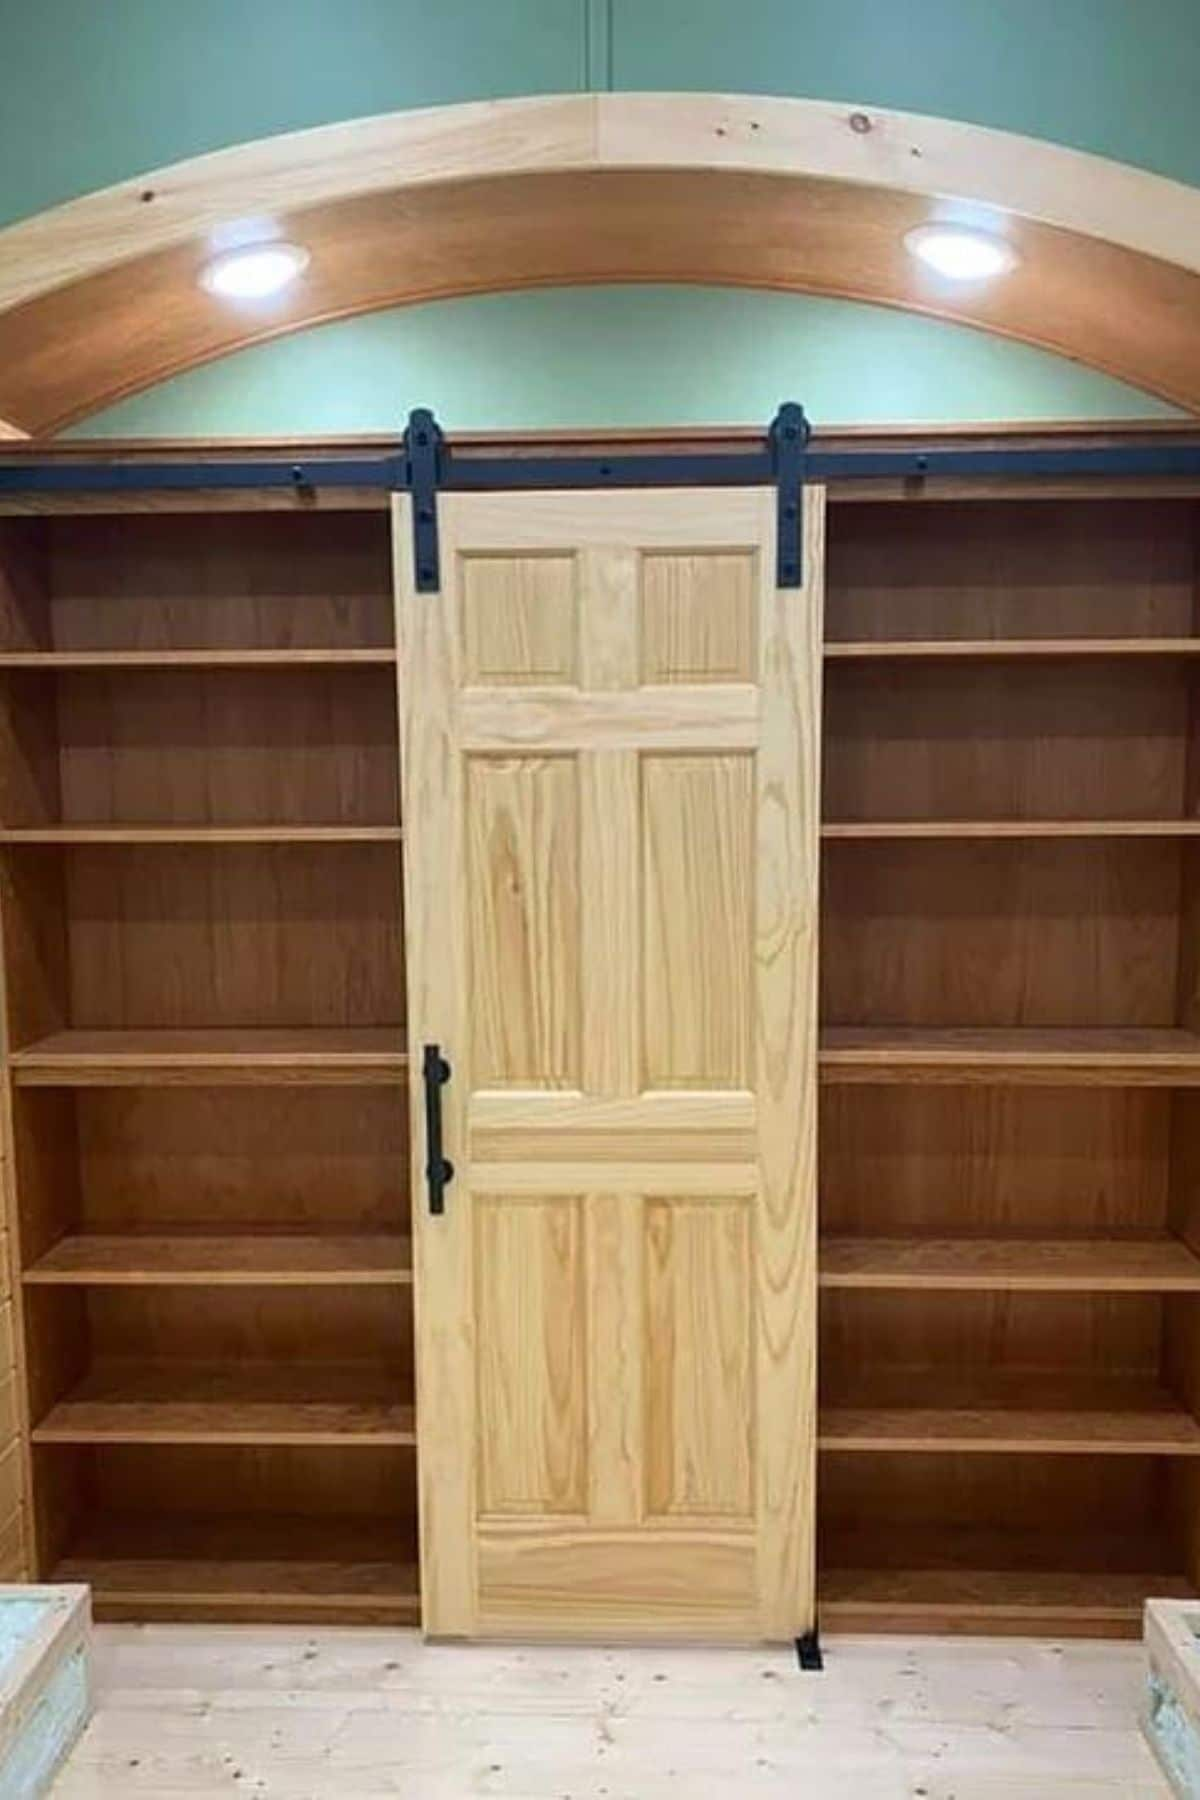 Wooden barn door hanging between bookcases against arched green wall